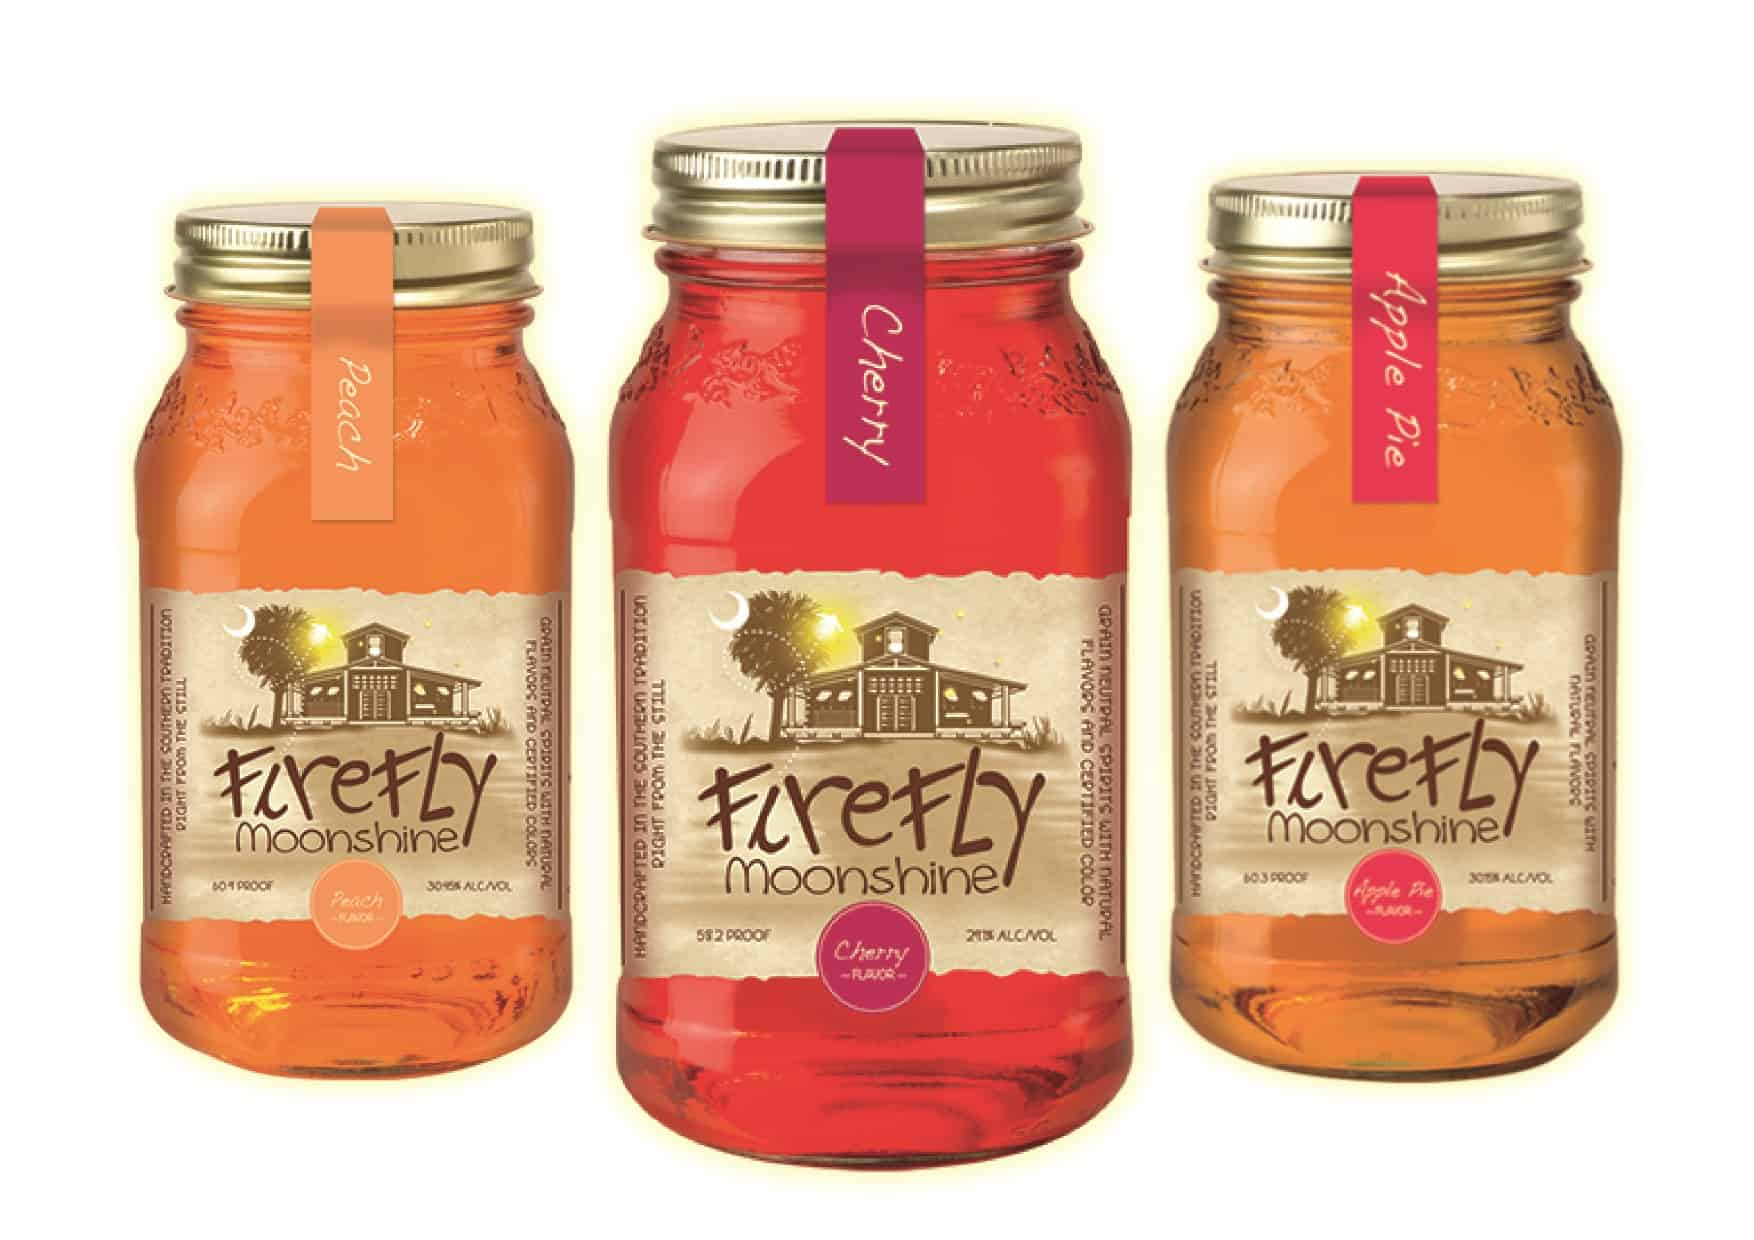 Firefly Moonshine distributed by Hi Spirits